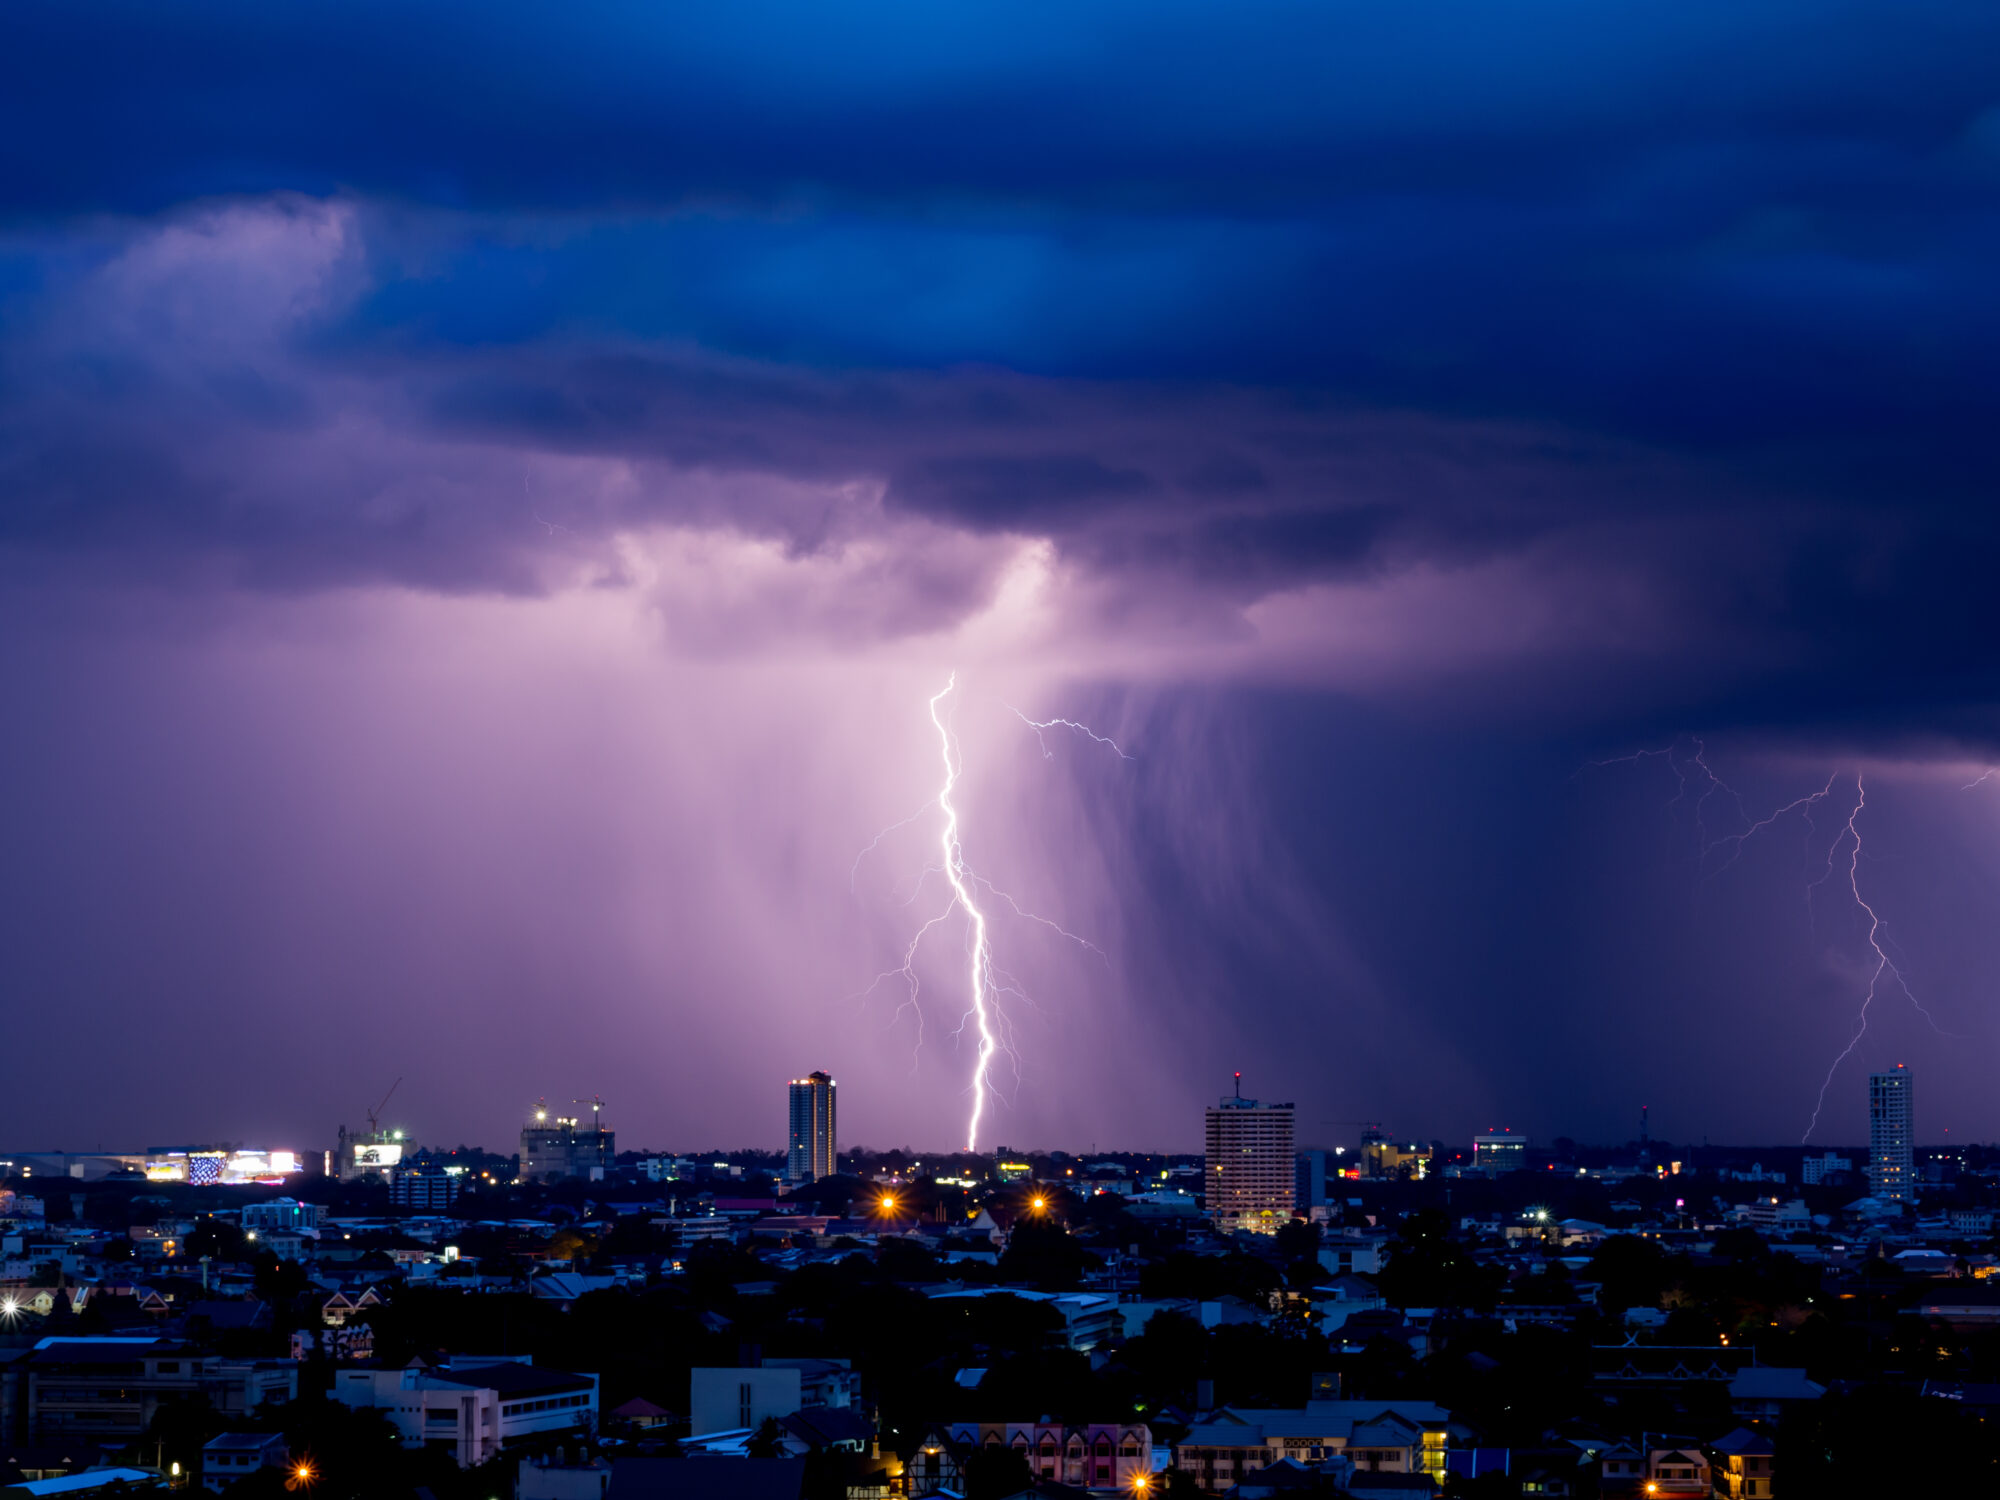 Lightning storm over city losing power electricity